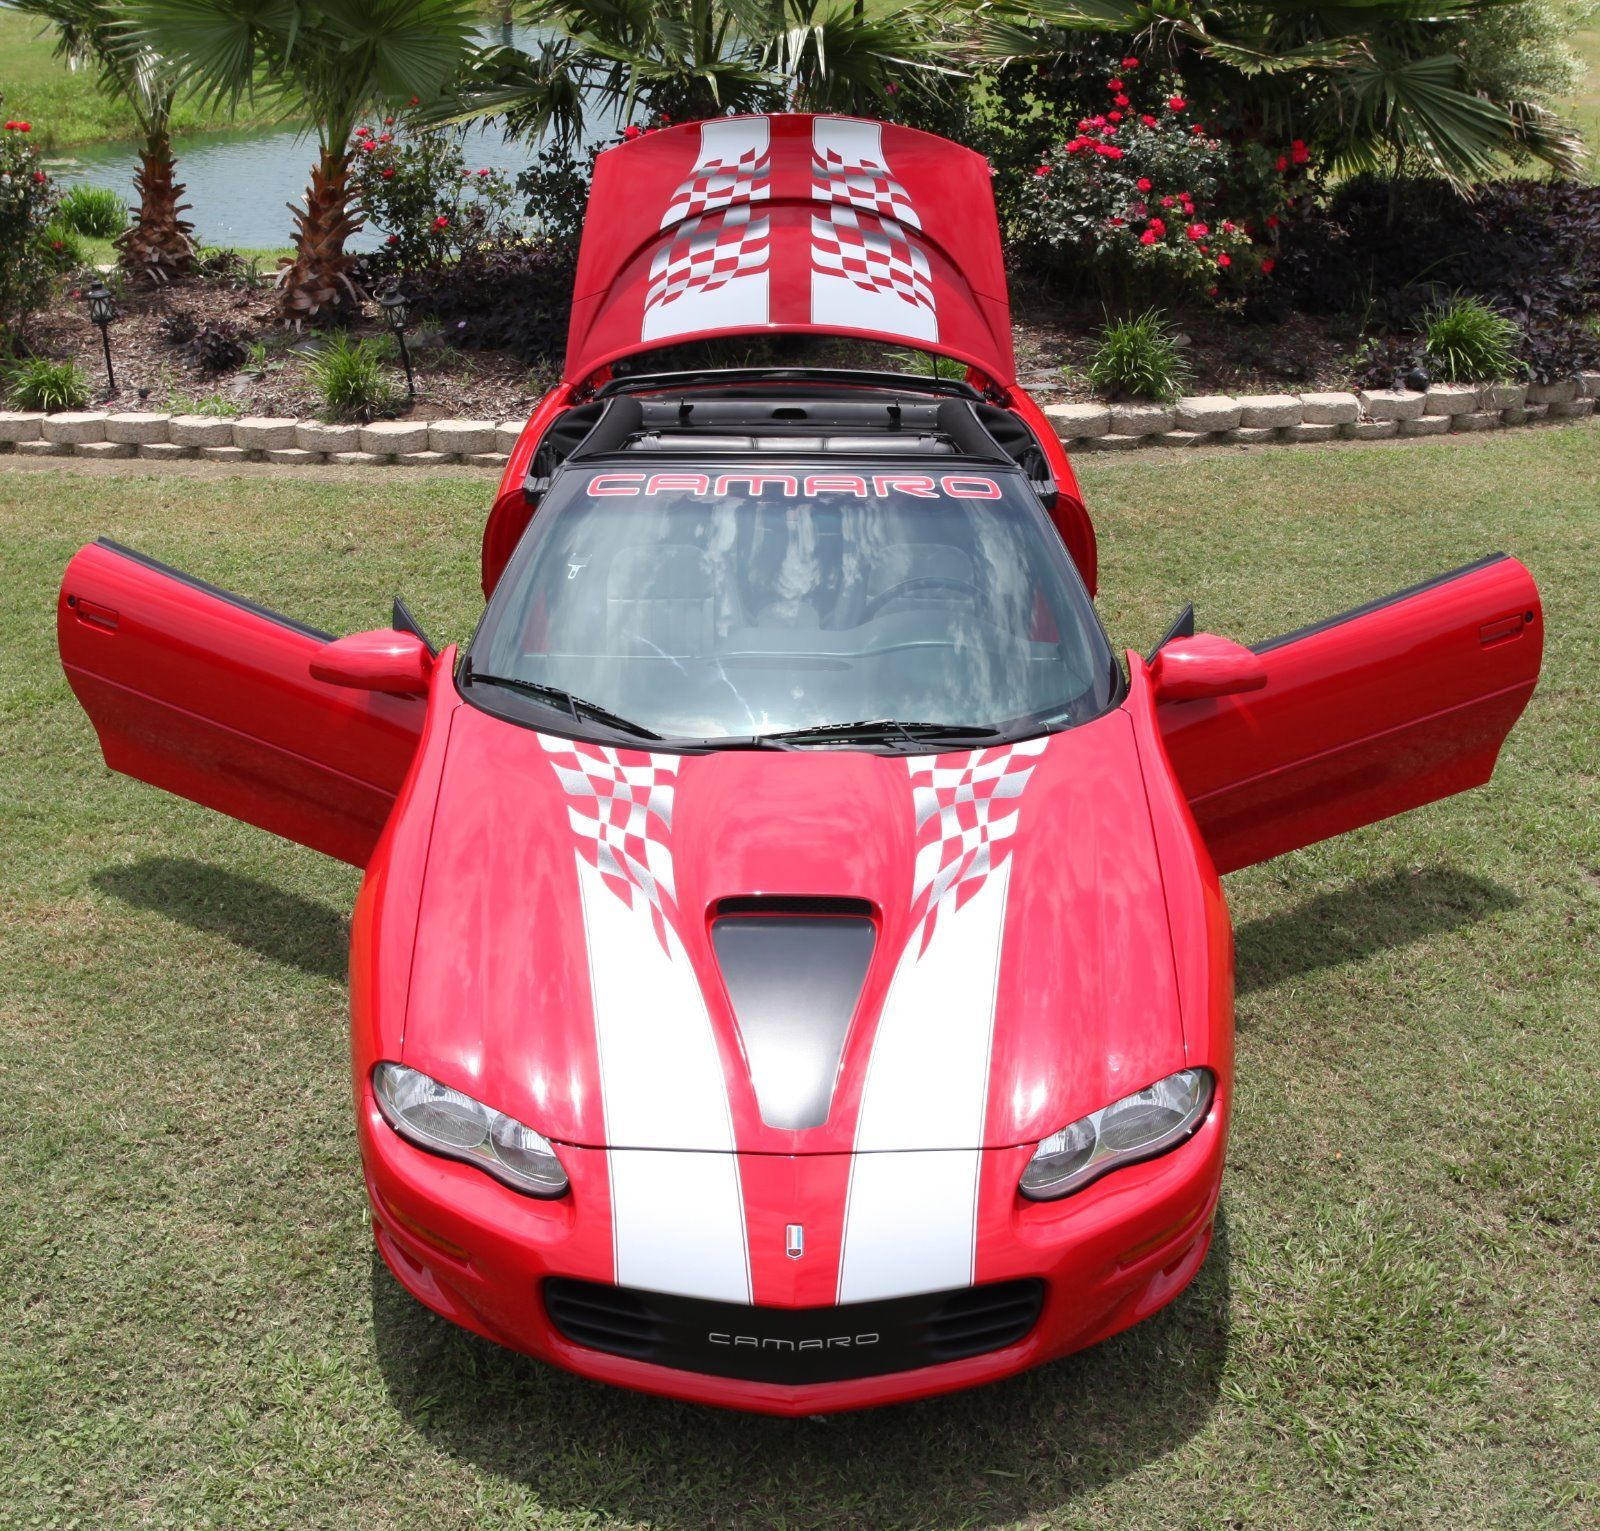 2002 Slp Camaro Ss Le Convertible Z4c For Sale